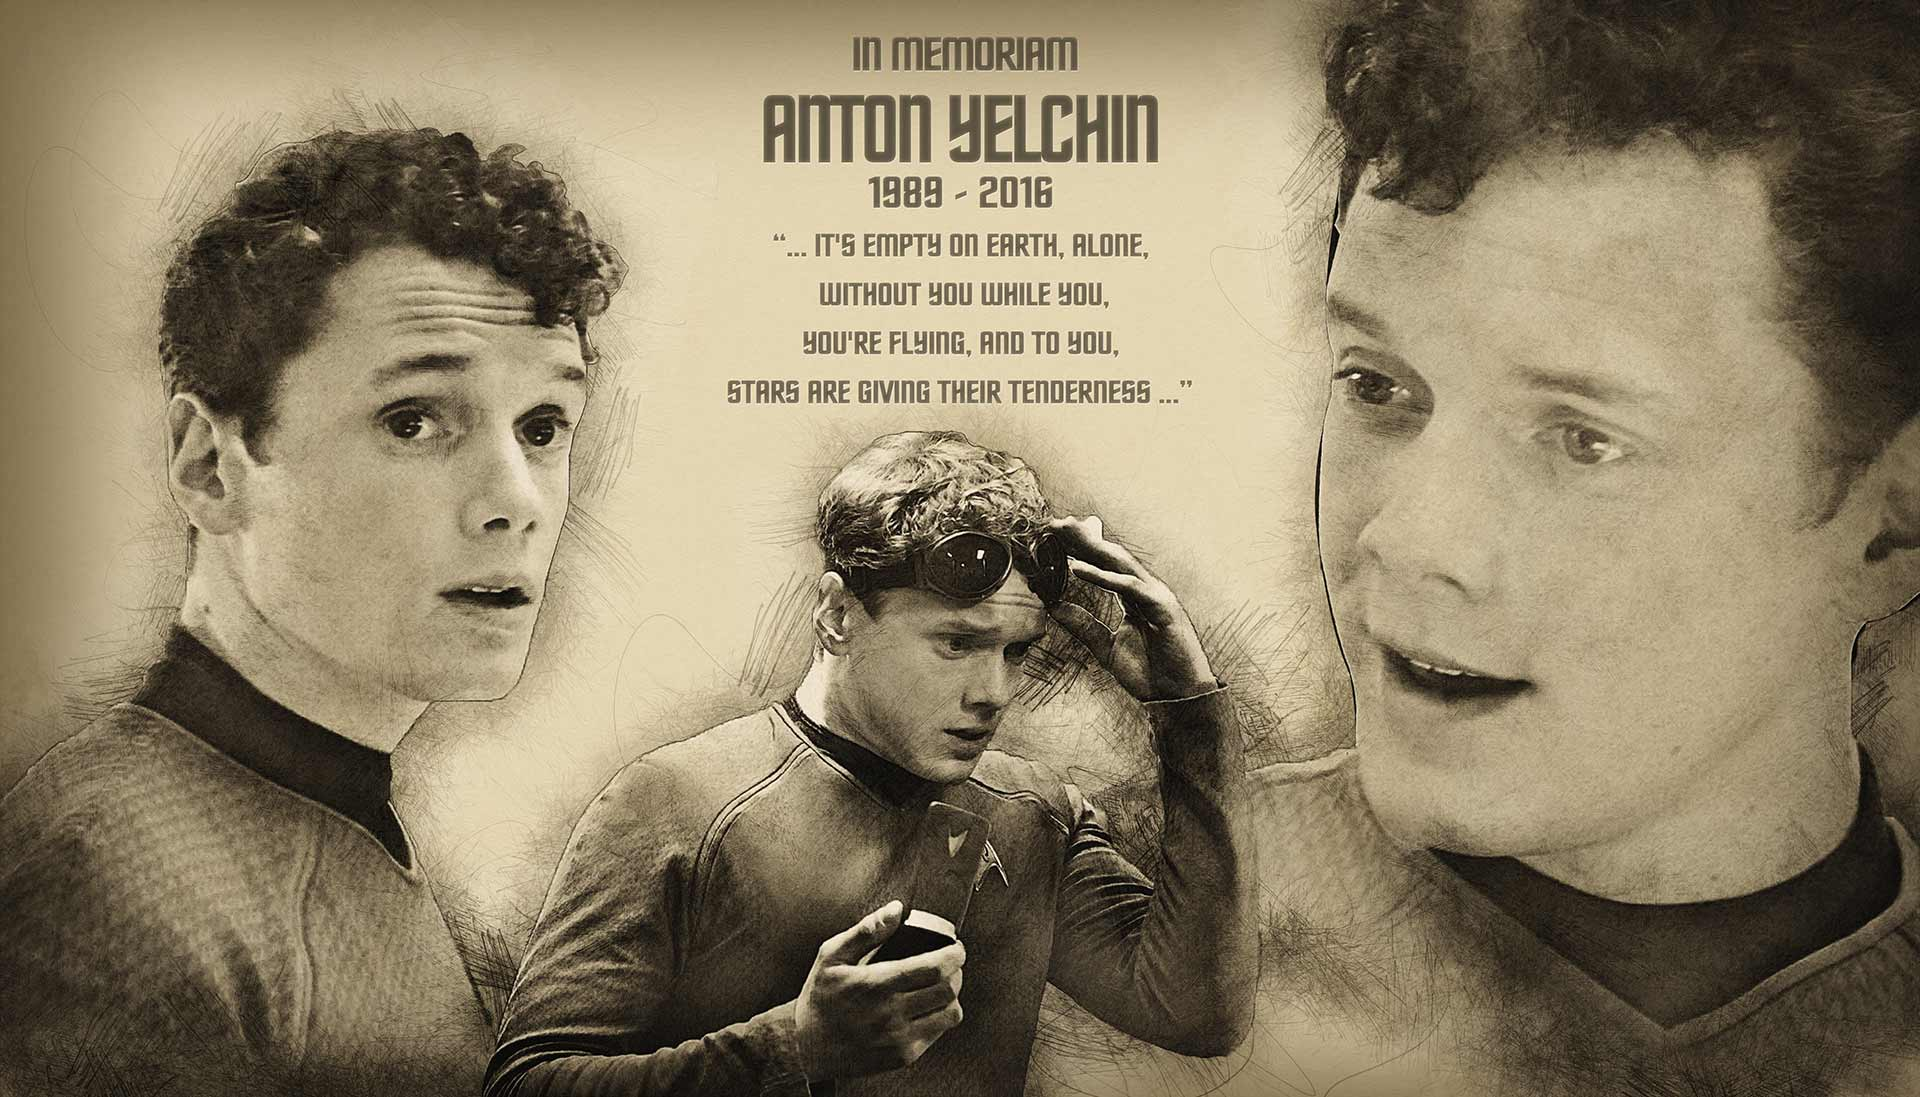 Star Strek Las Vegas In Memoriam-to Anton Yelchin Banner Designed at Creation Entertainment